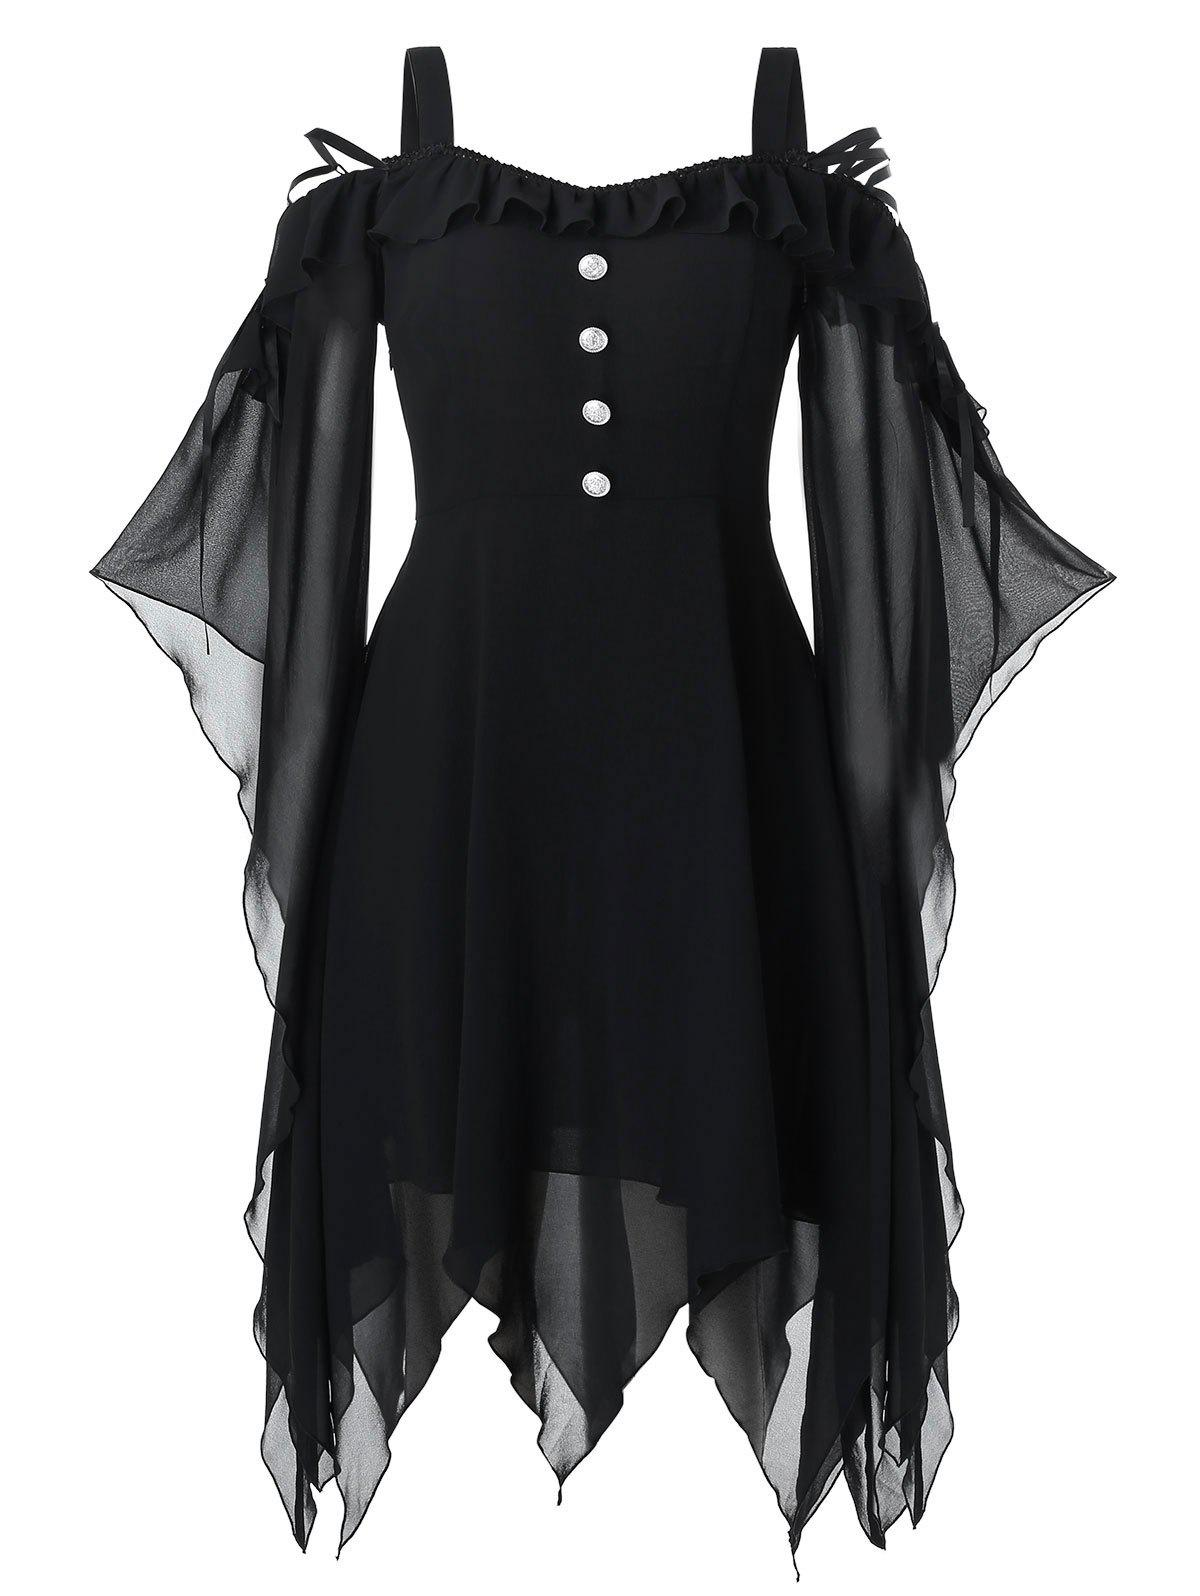 Plus Size Handkerchief Butterfly Sleeve Lace Up Halloween Gothic Dress - BLACK 3X